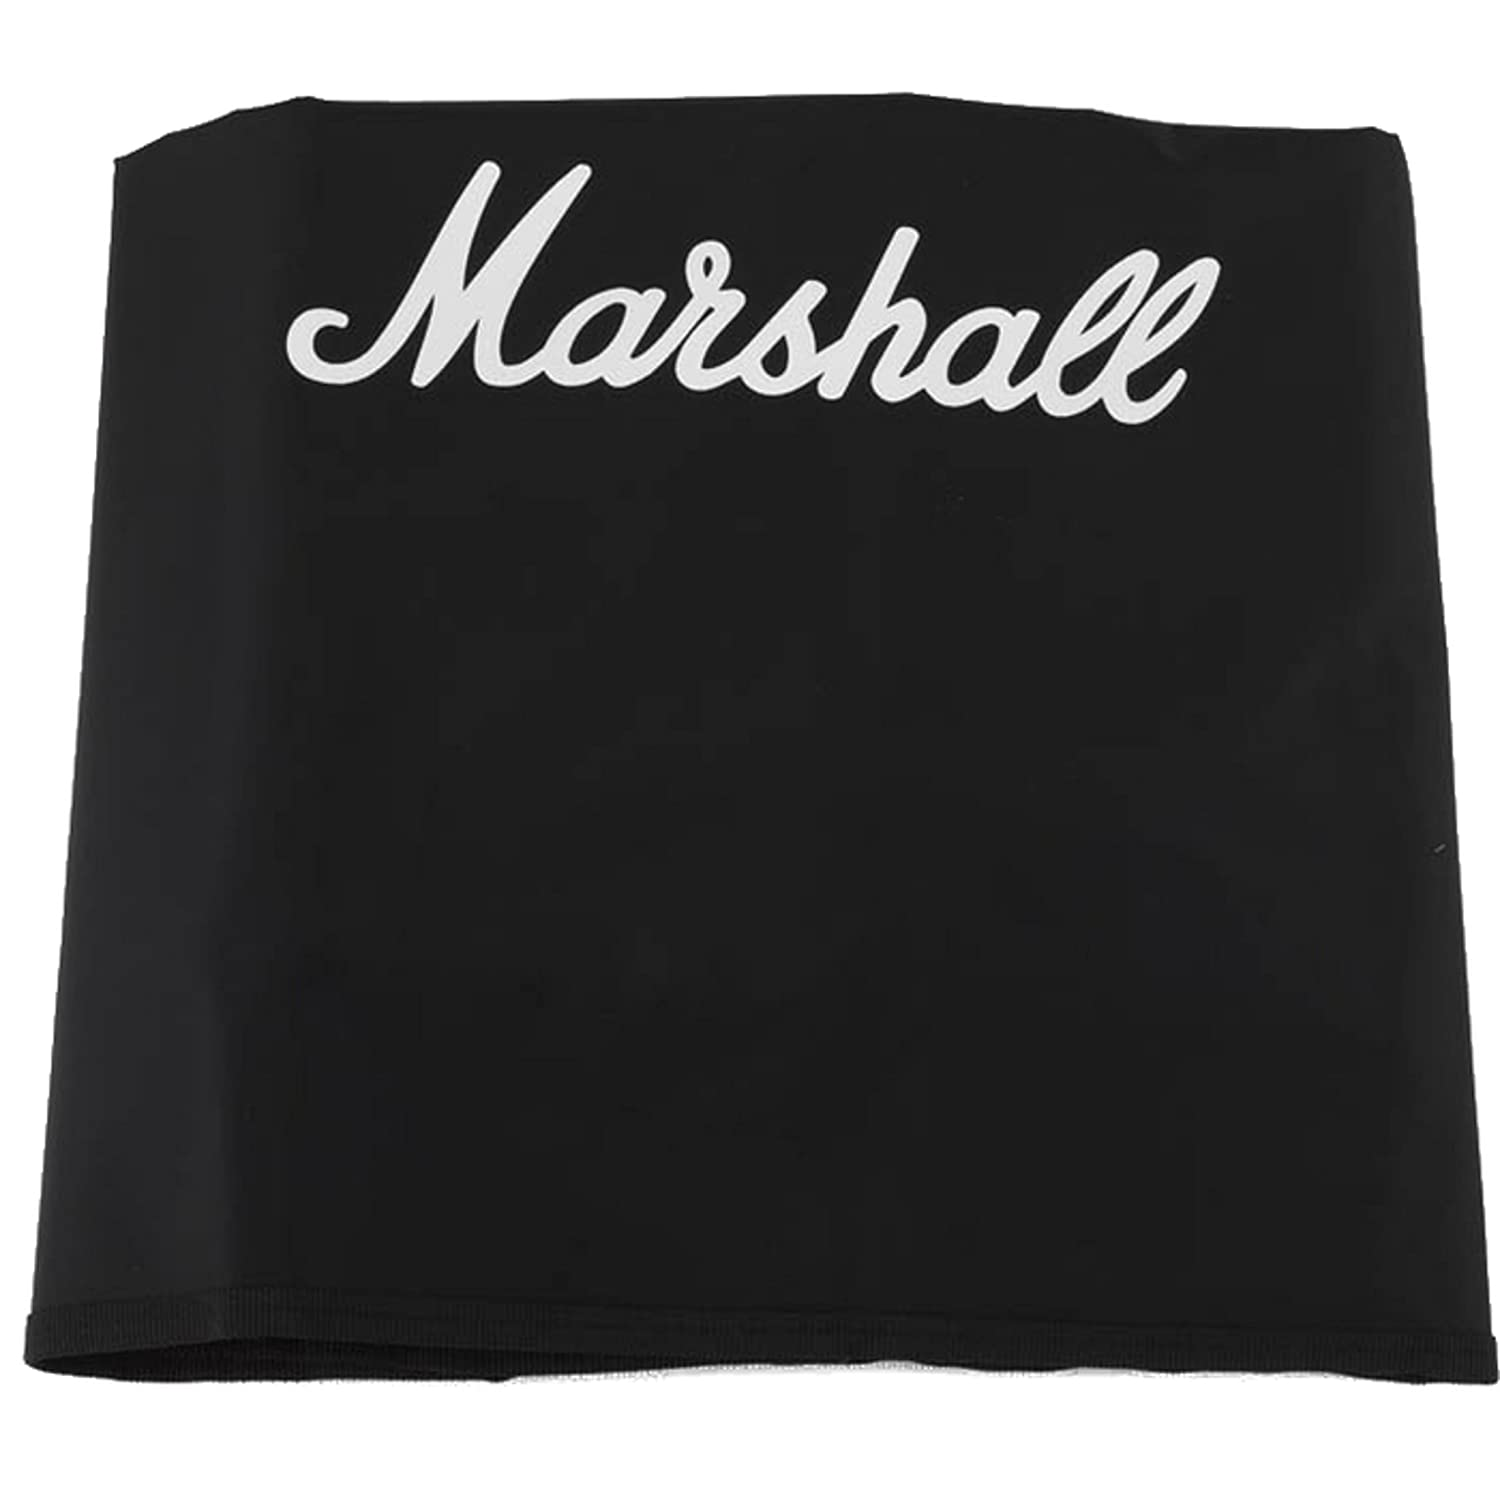 Marshall Amp Cover standard Head